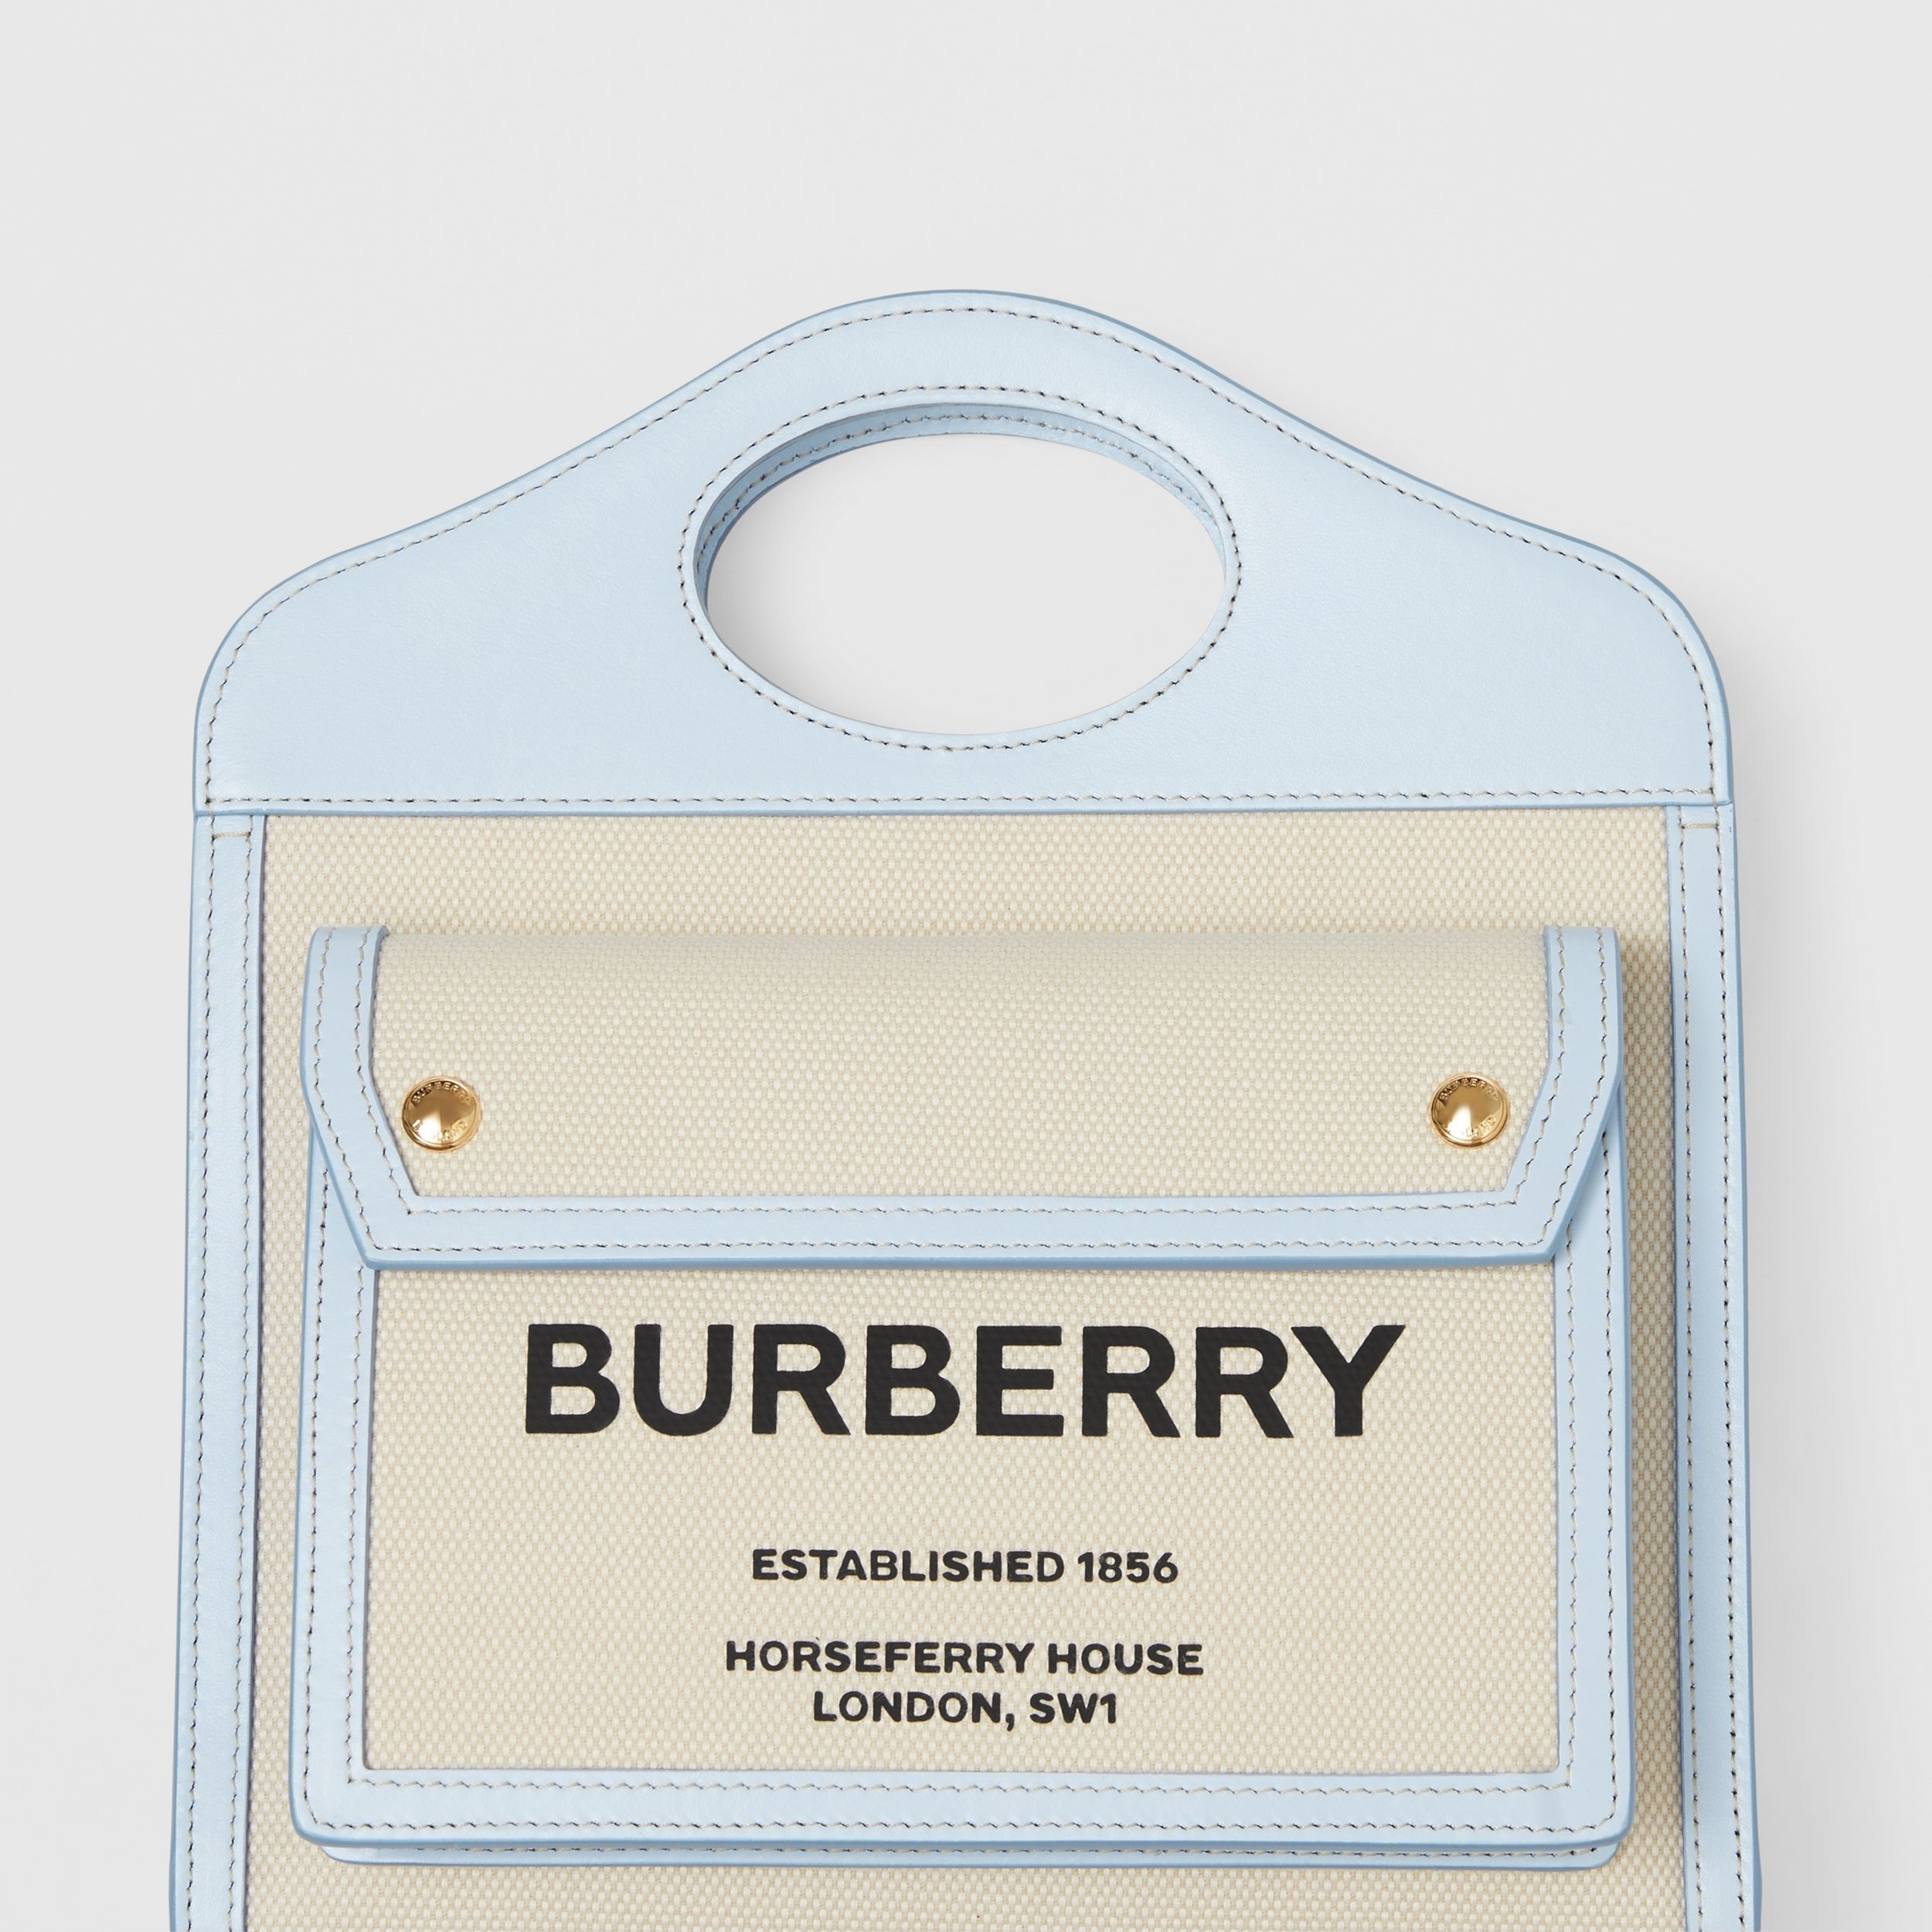 Mini Two-tone Canvas and Leather Pocket Bag in Natural/pale Blue - Women | Burberry - 2